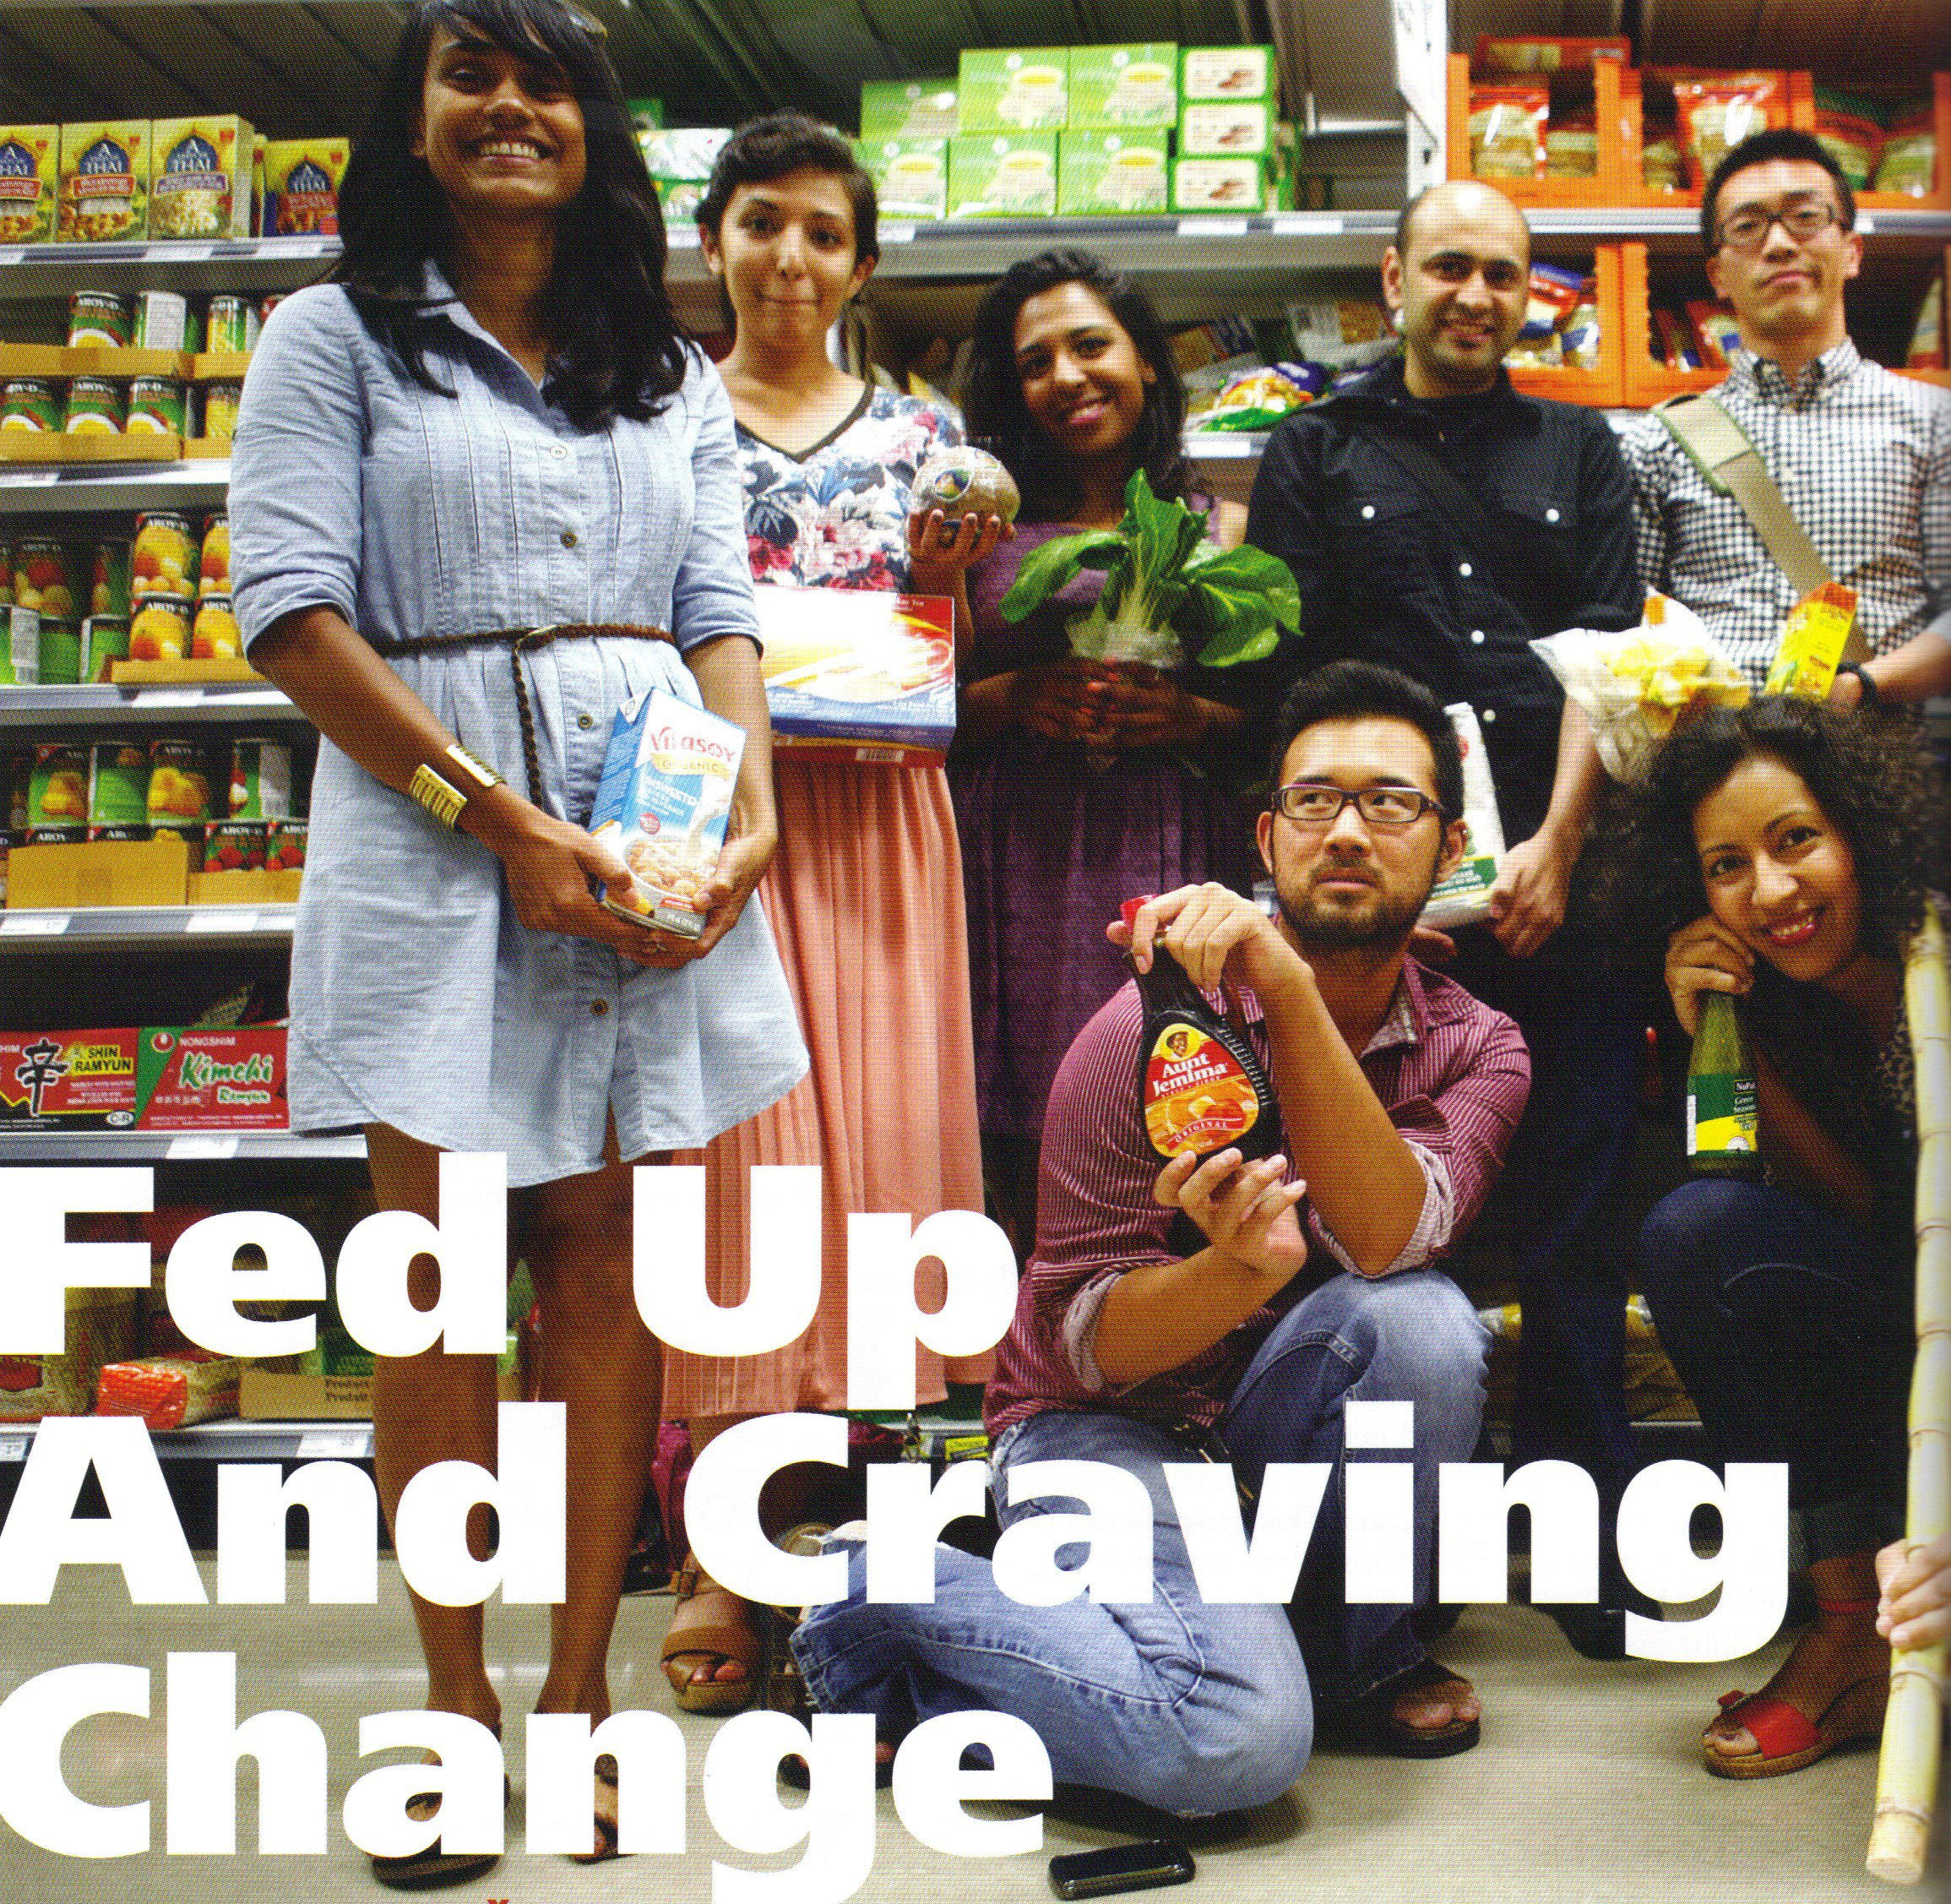 """Fed up and craving change"" on photo of people at grocery store"